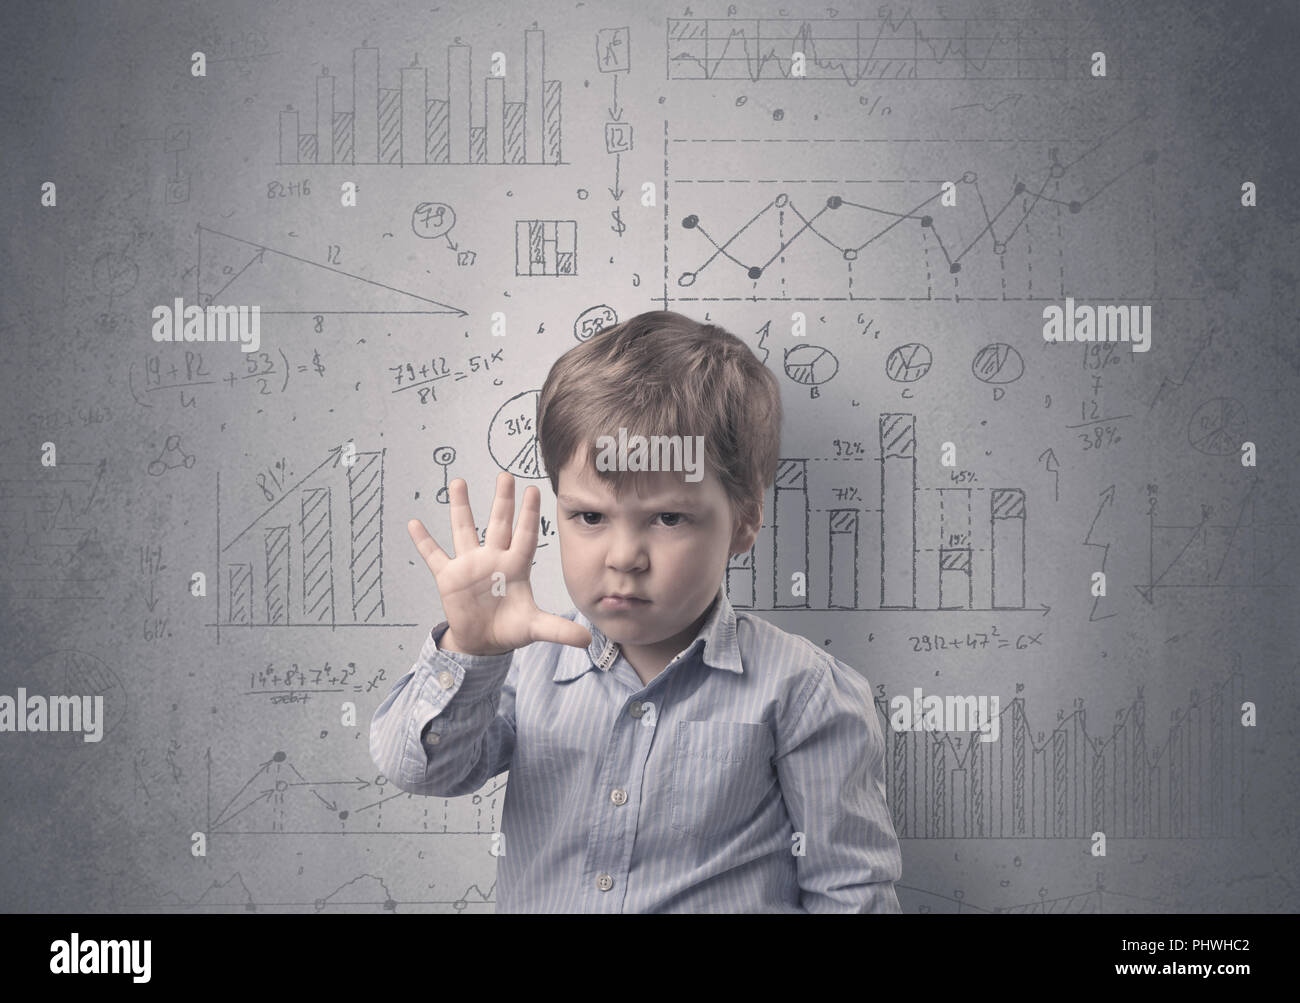 Little boy in front of a grey wall with graphs and statistics around - Stock Image